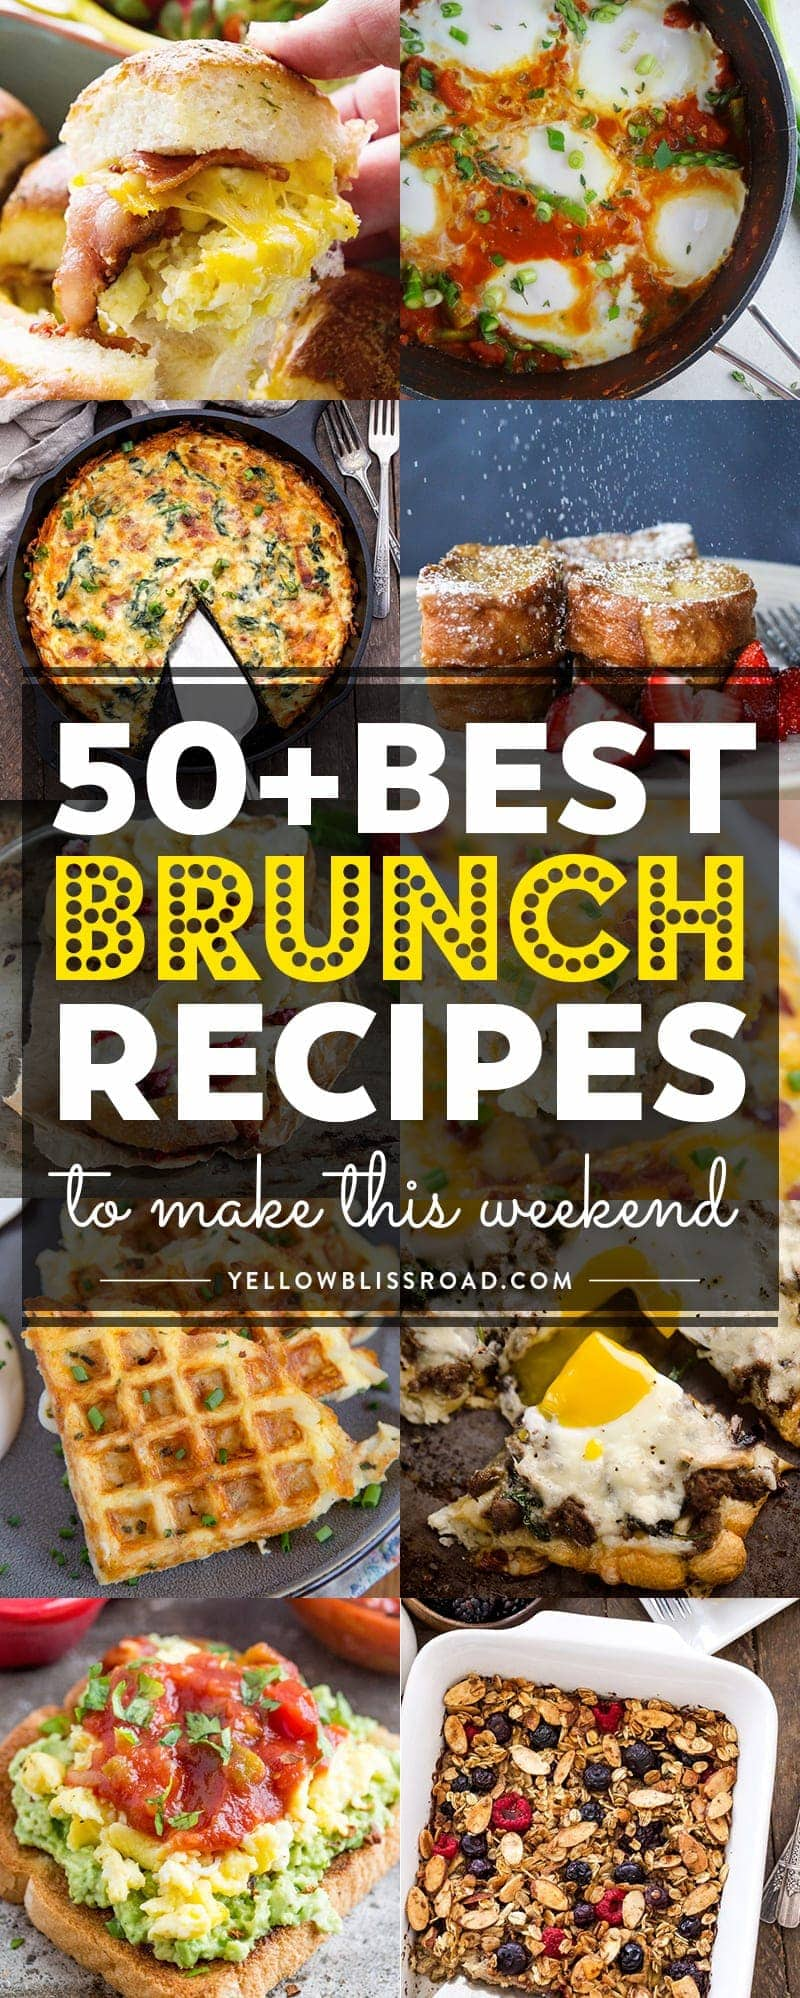 50 Of The Best Brunch Recipes To Make This Weekend